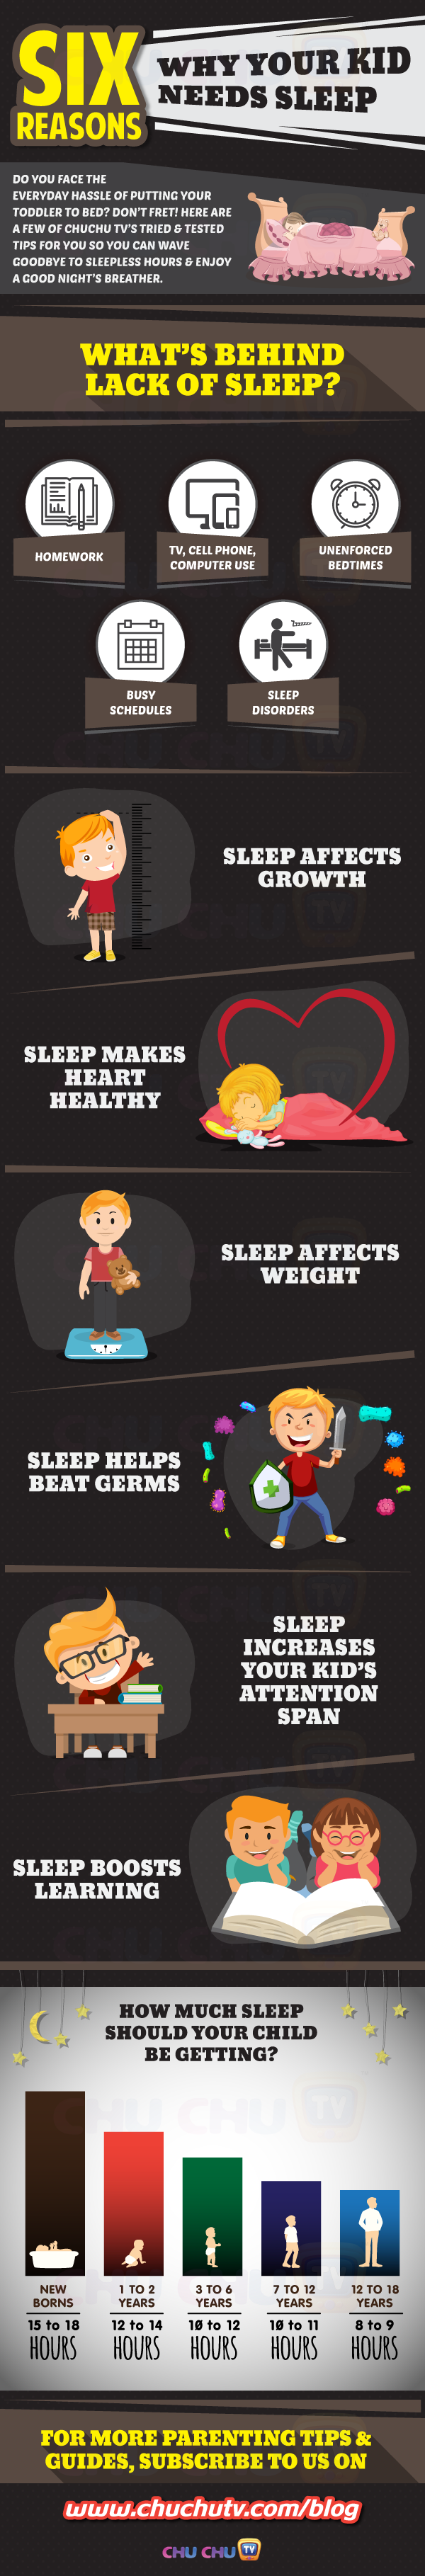 Six Reasons Why Your Kid Needs SleepSix Reasons Why Your Kid Needs SleepSix Reasons Why Your Kid Needs Sleep